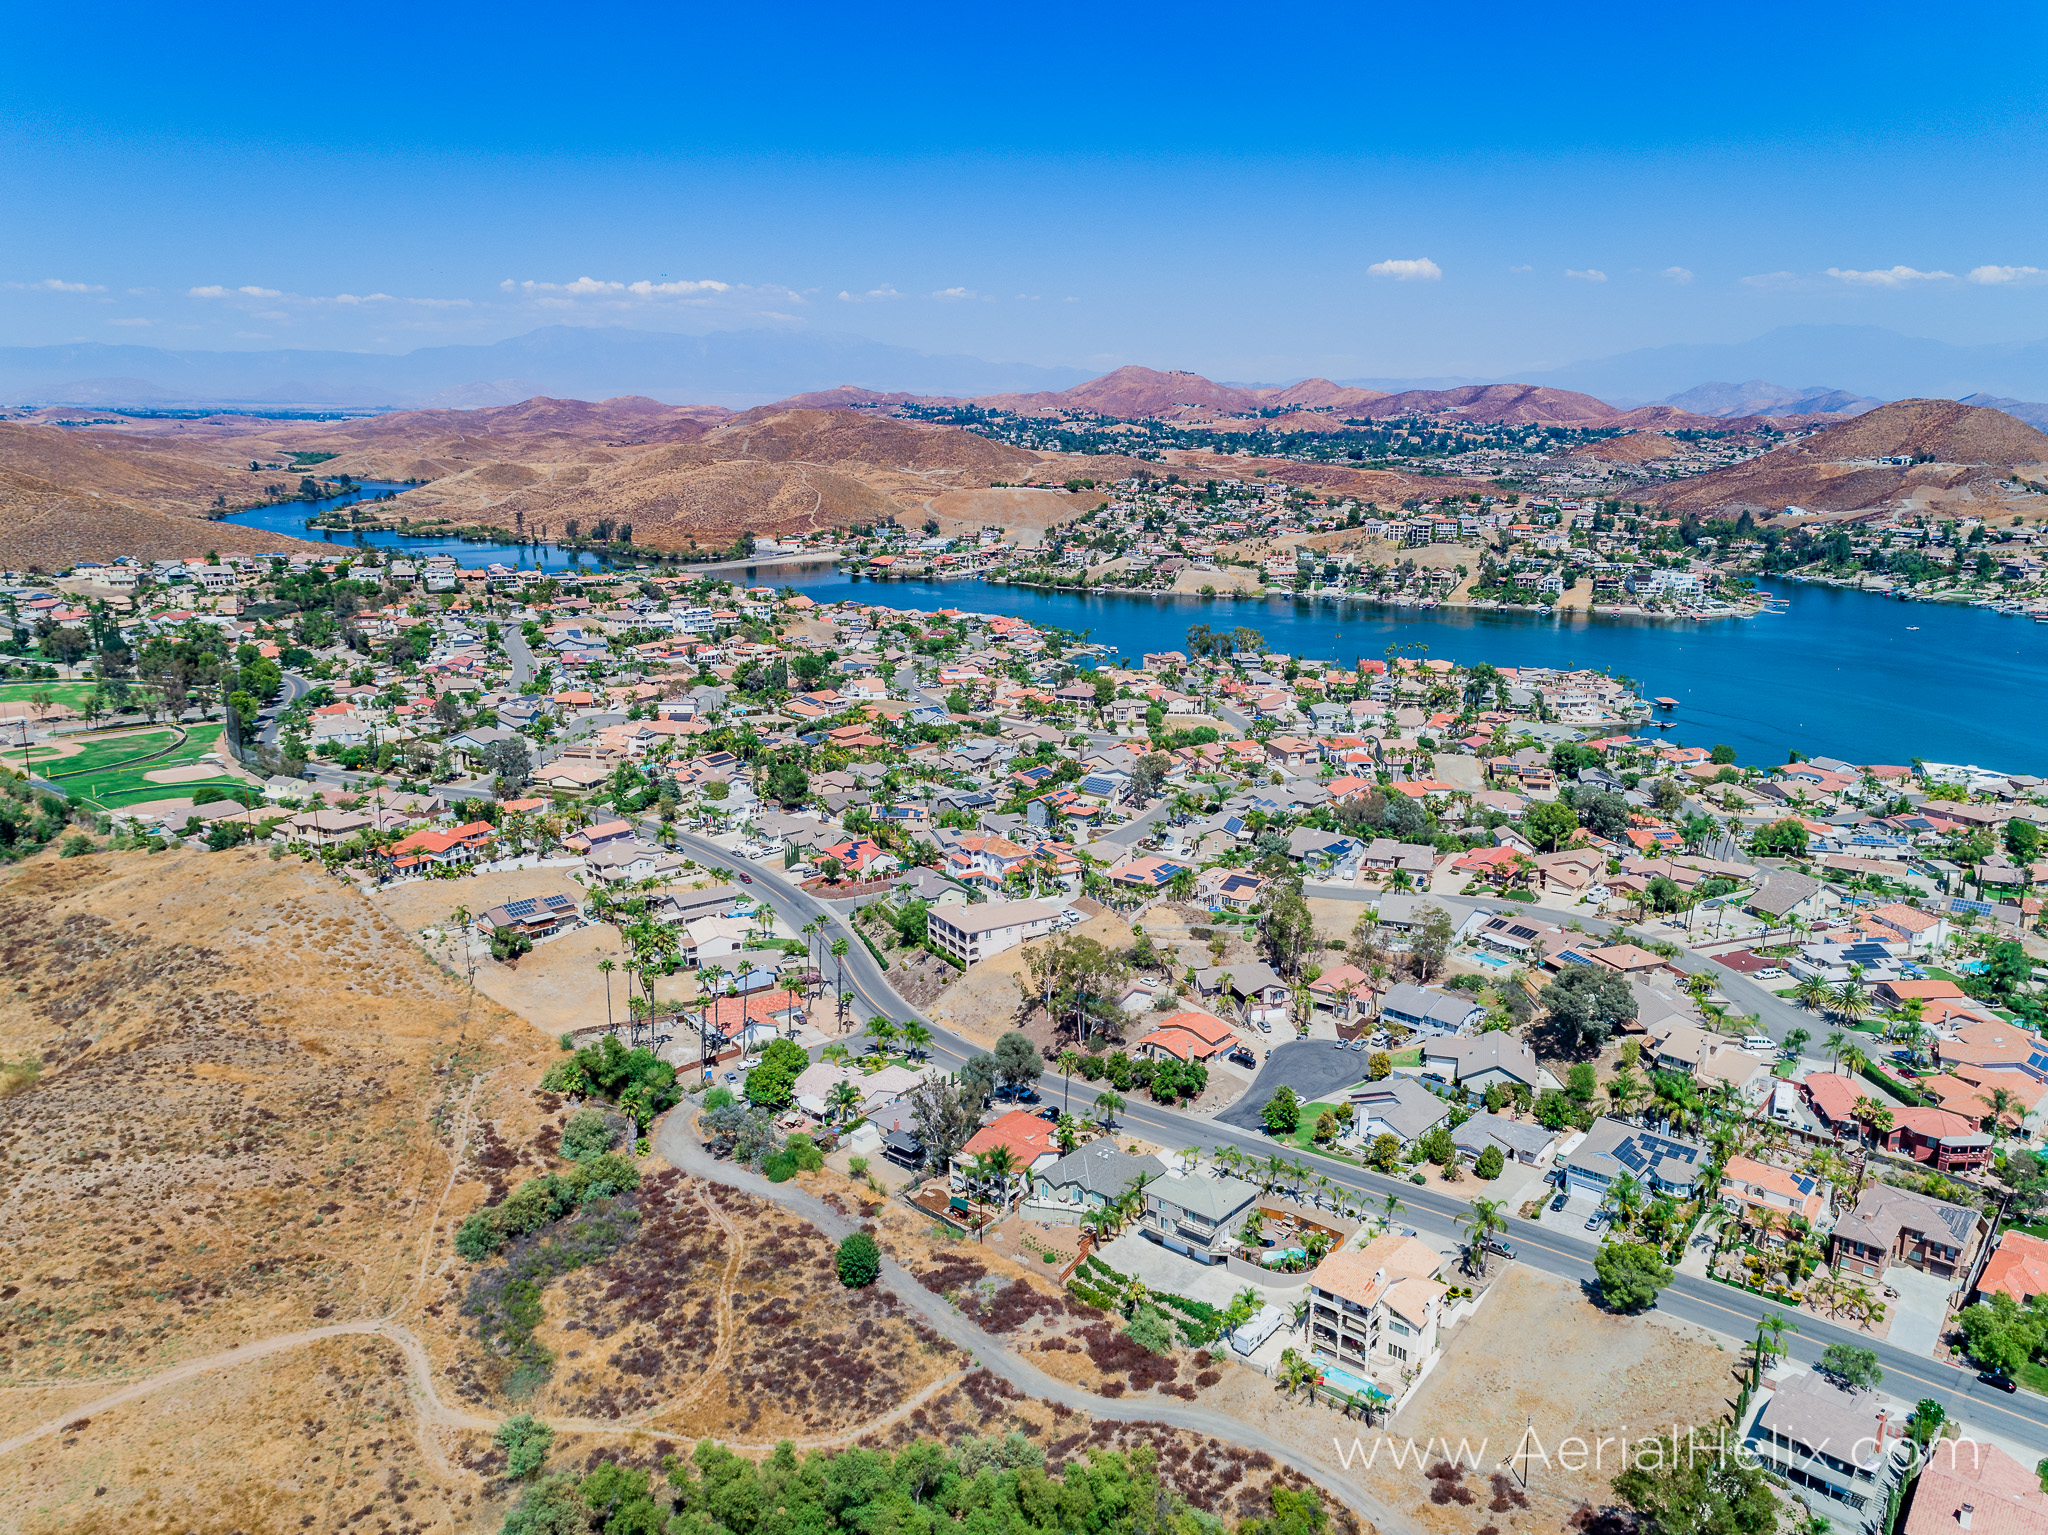 Longhorn Dr - HELIX Aerial Real Estate Photographer-4.jpg